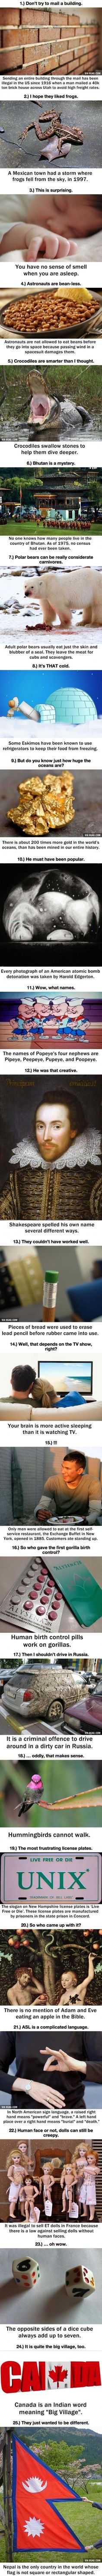 25 Completely Random Things You Didn't Know